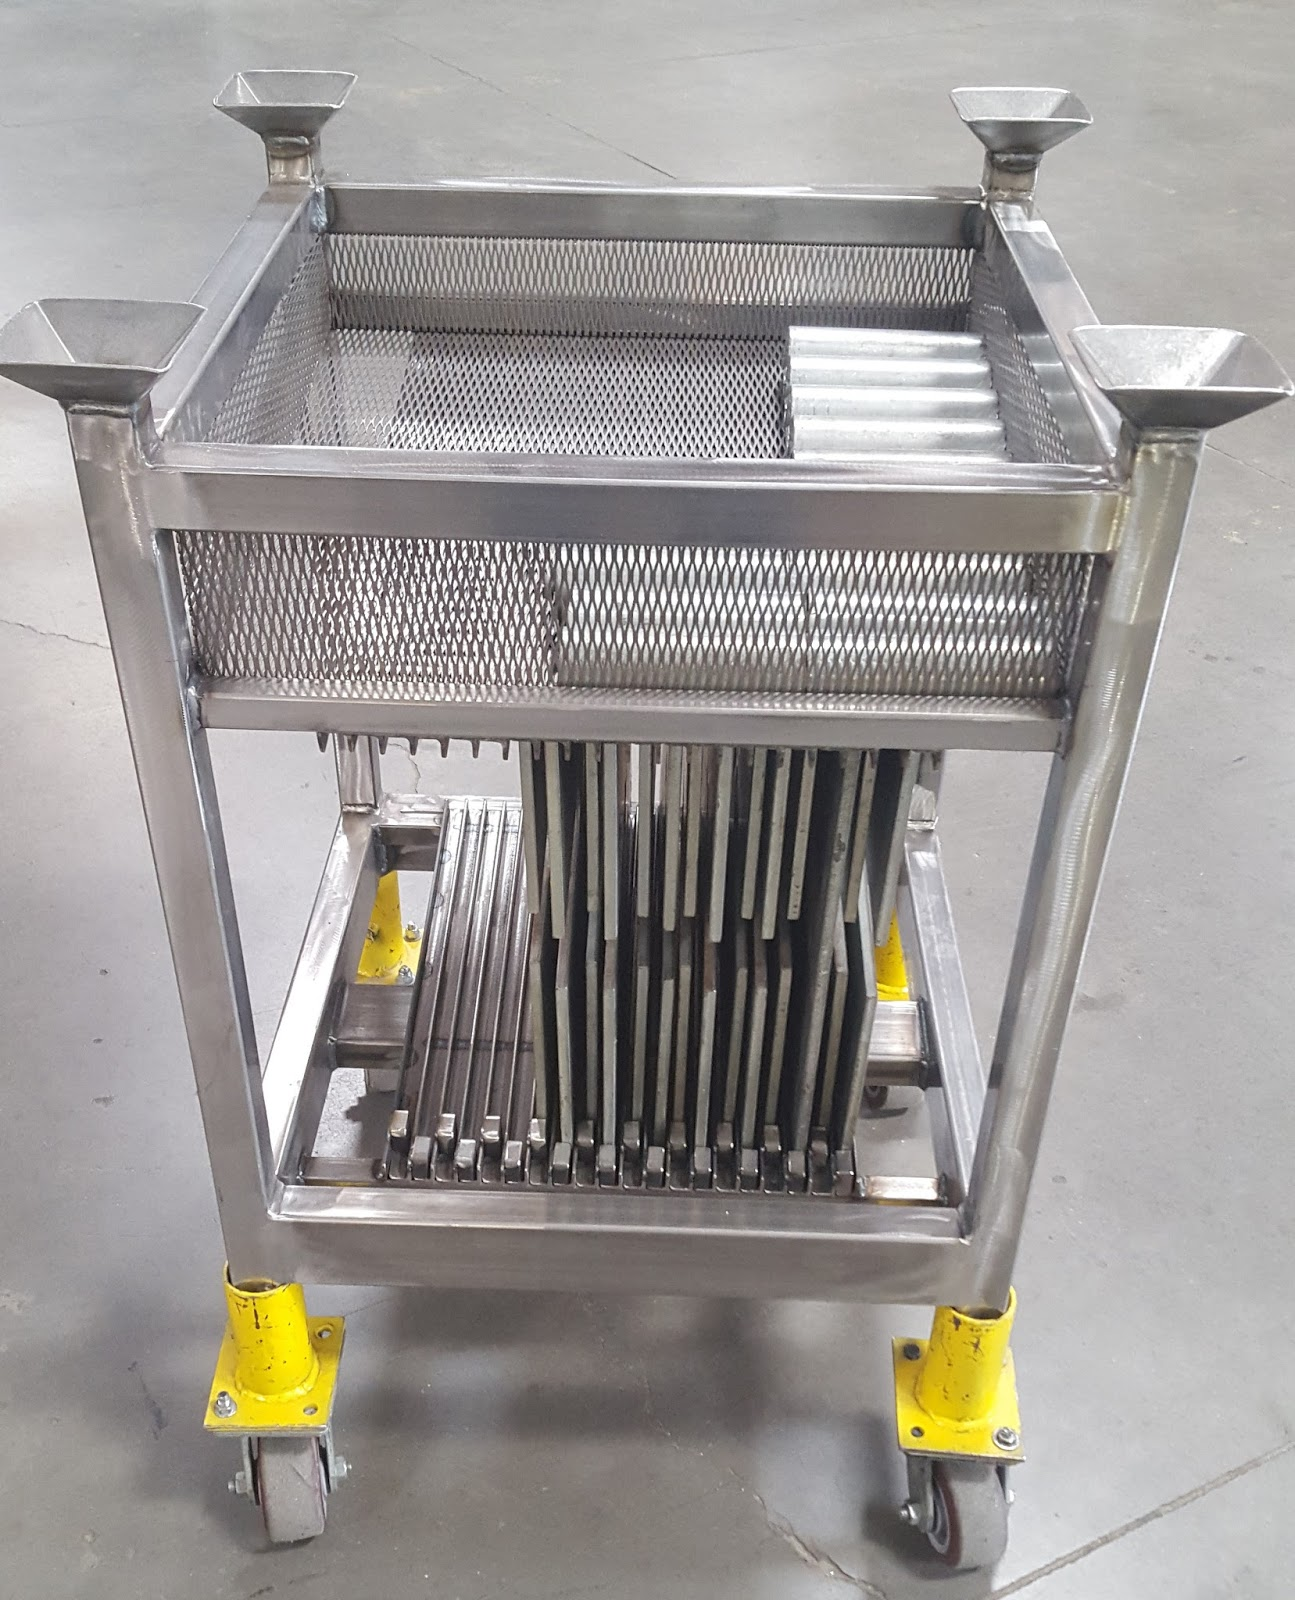 """ IHP's PIPELINE POST "": CARTS FOR PIPE & DRAPE BASE PLATES"